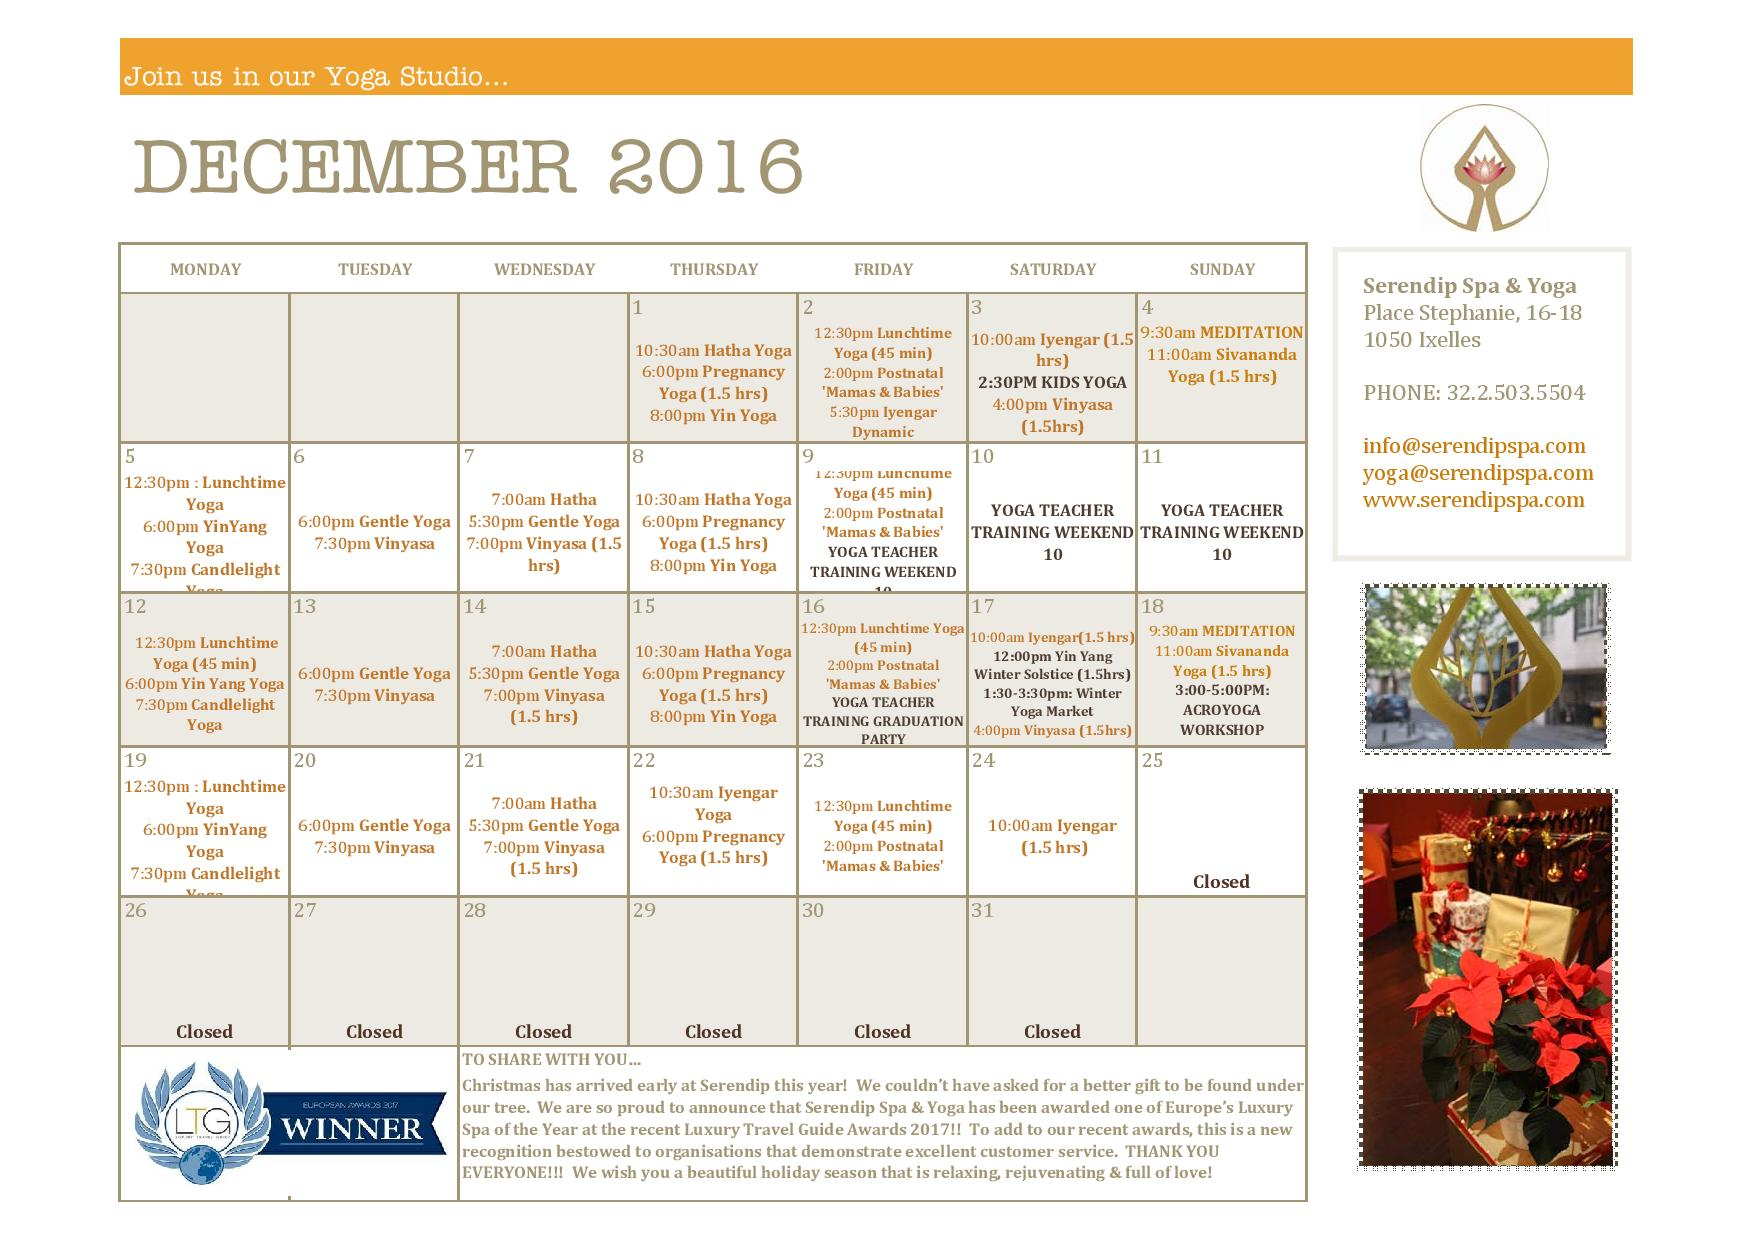 Serendip Spa and Yoga Calendar 2016_December_A4 FRONT-page-001.jpg